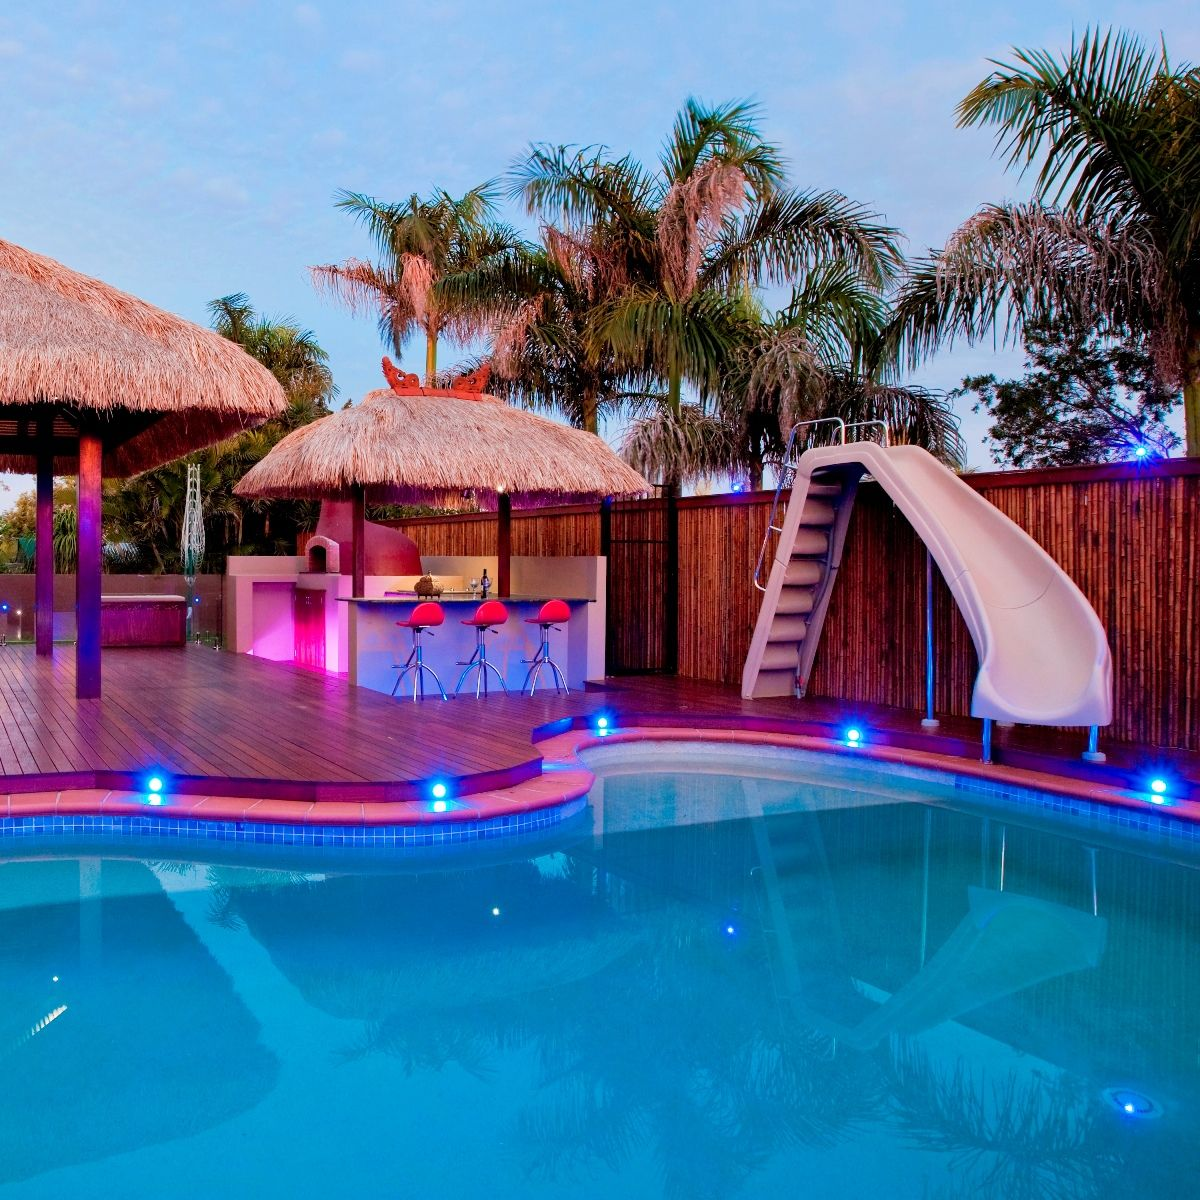 Backyard Pools Prices: The Wild Ride The 2 Metres High Wild Ride™ Slide Offers Up